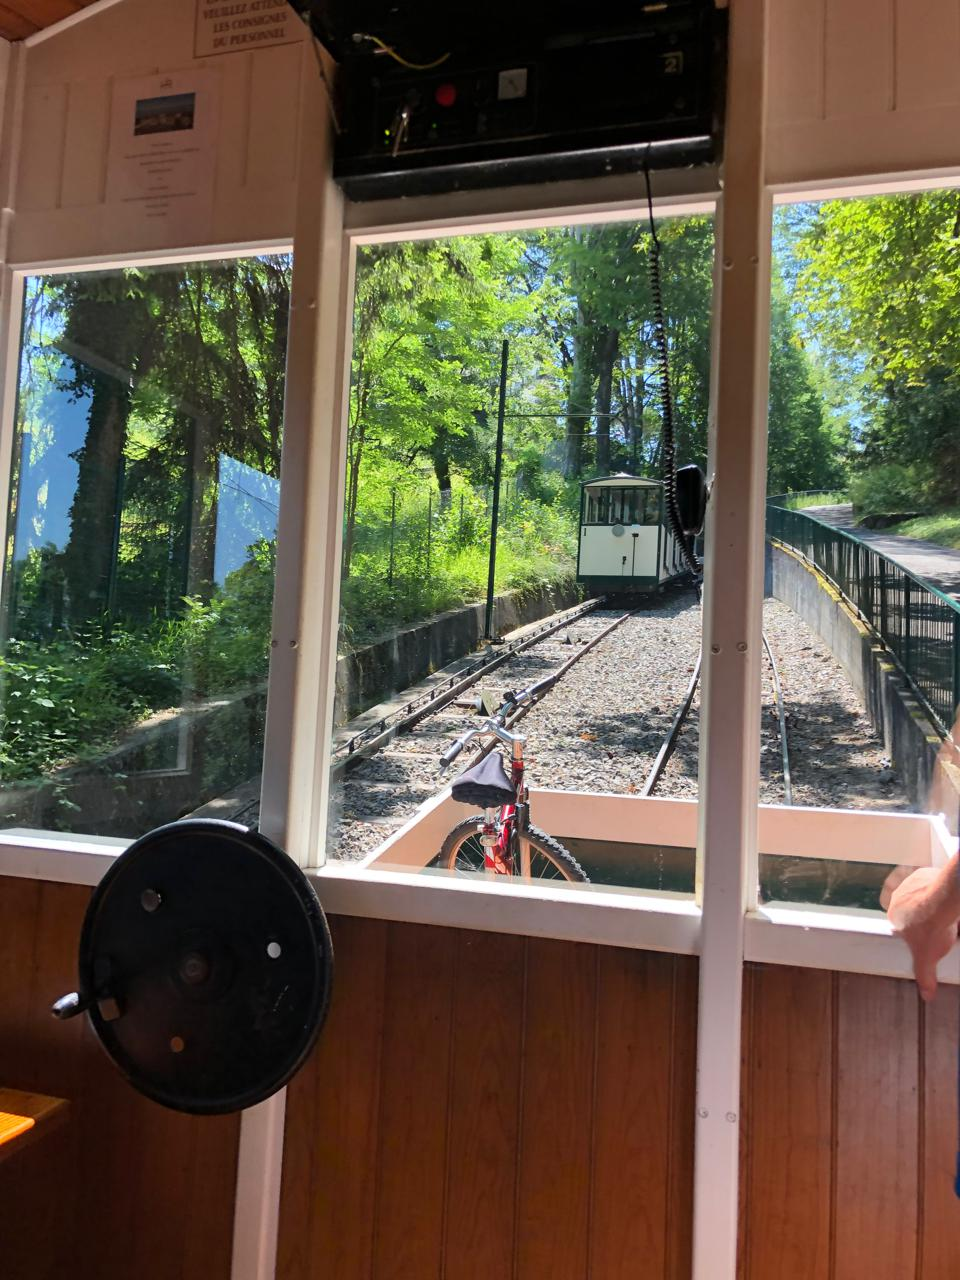 Evian's ancient funicular has been refurbished and brings travelers to the hills above the town